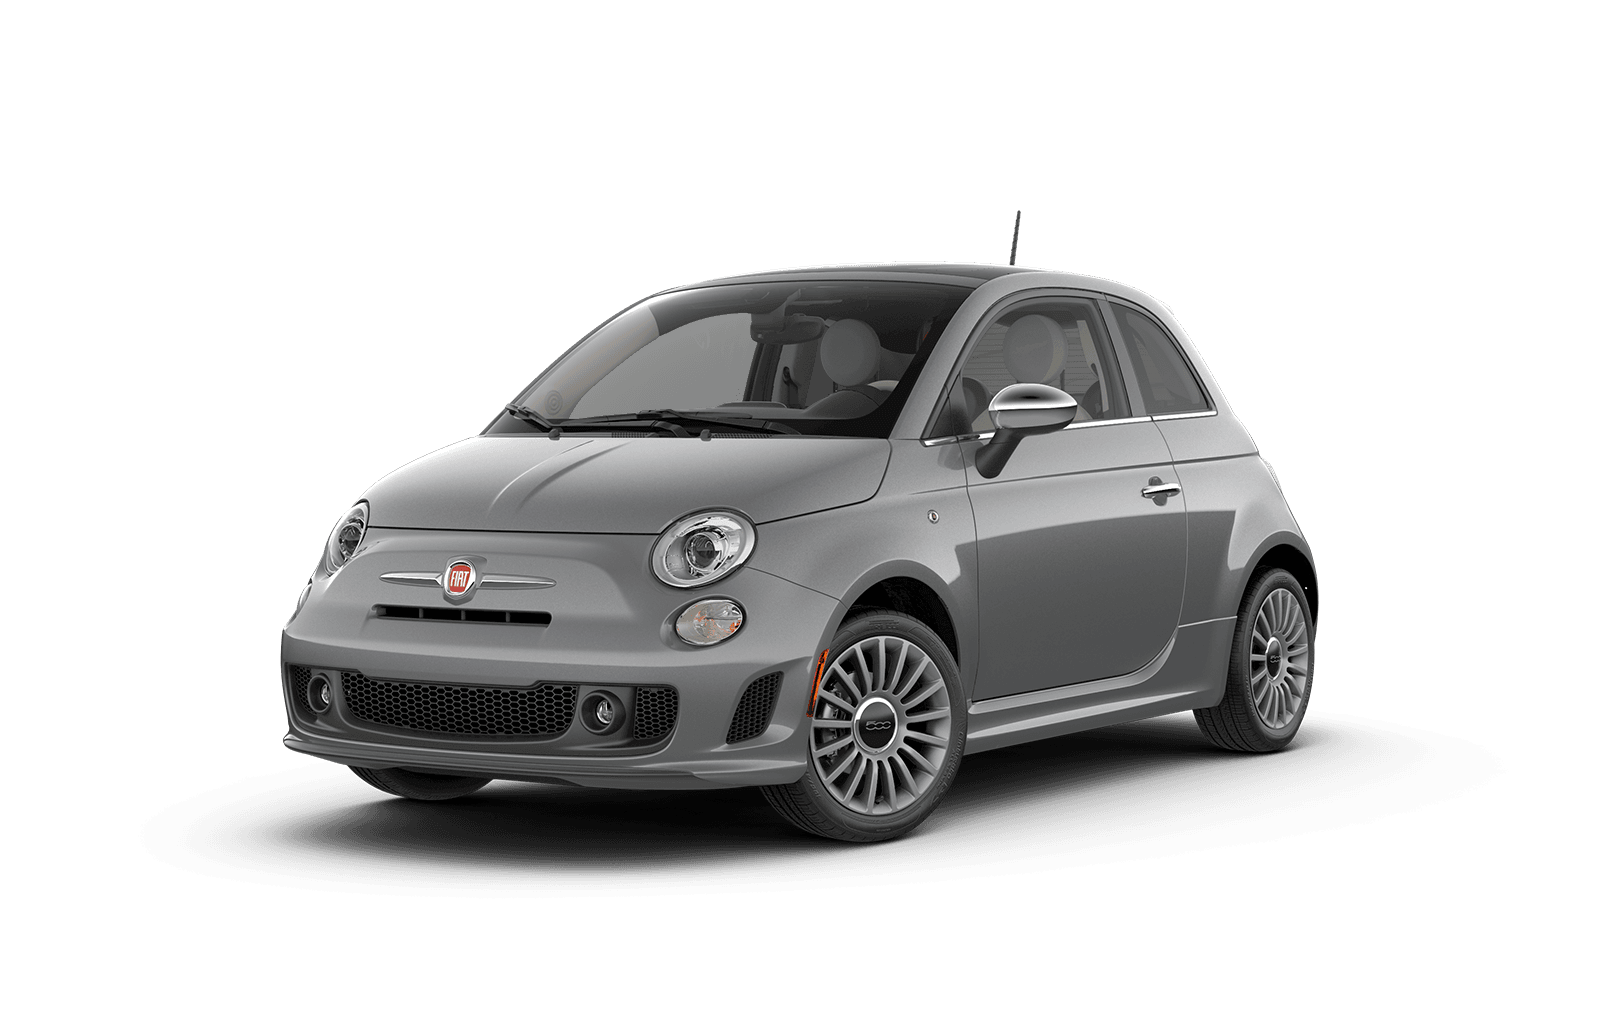 2019 FIAT 500 Full View in Silver with Wheels